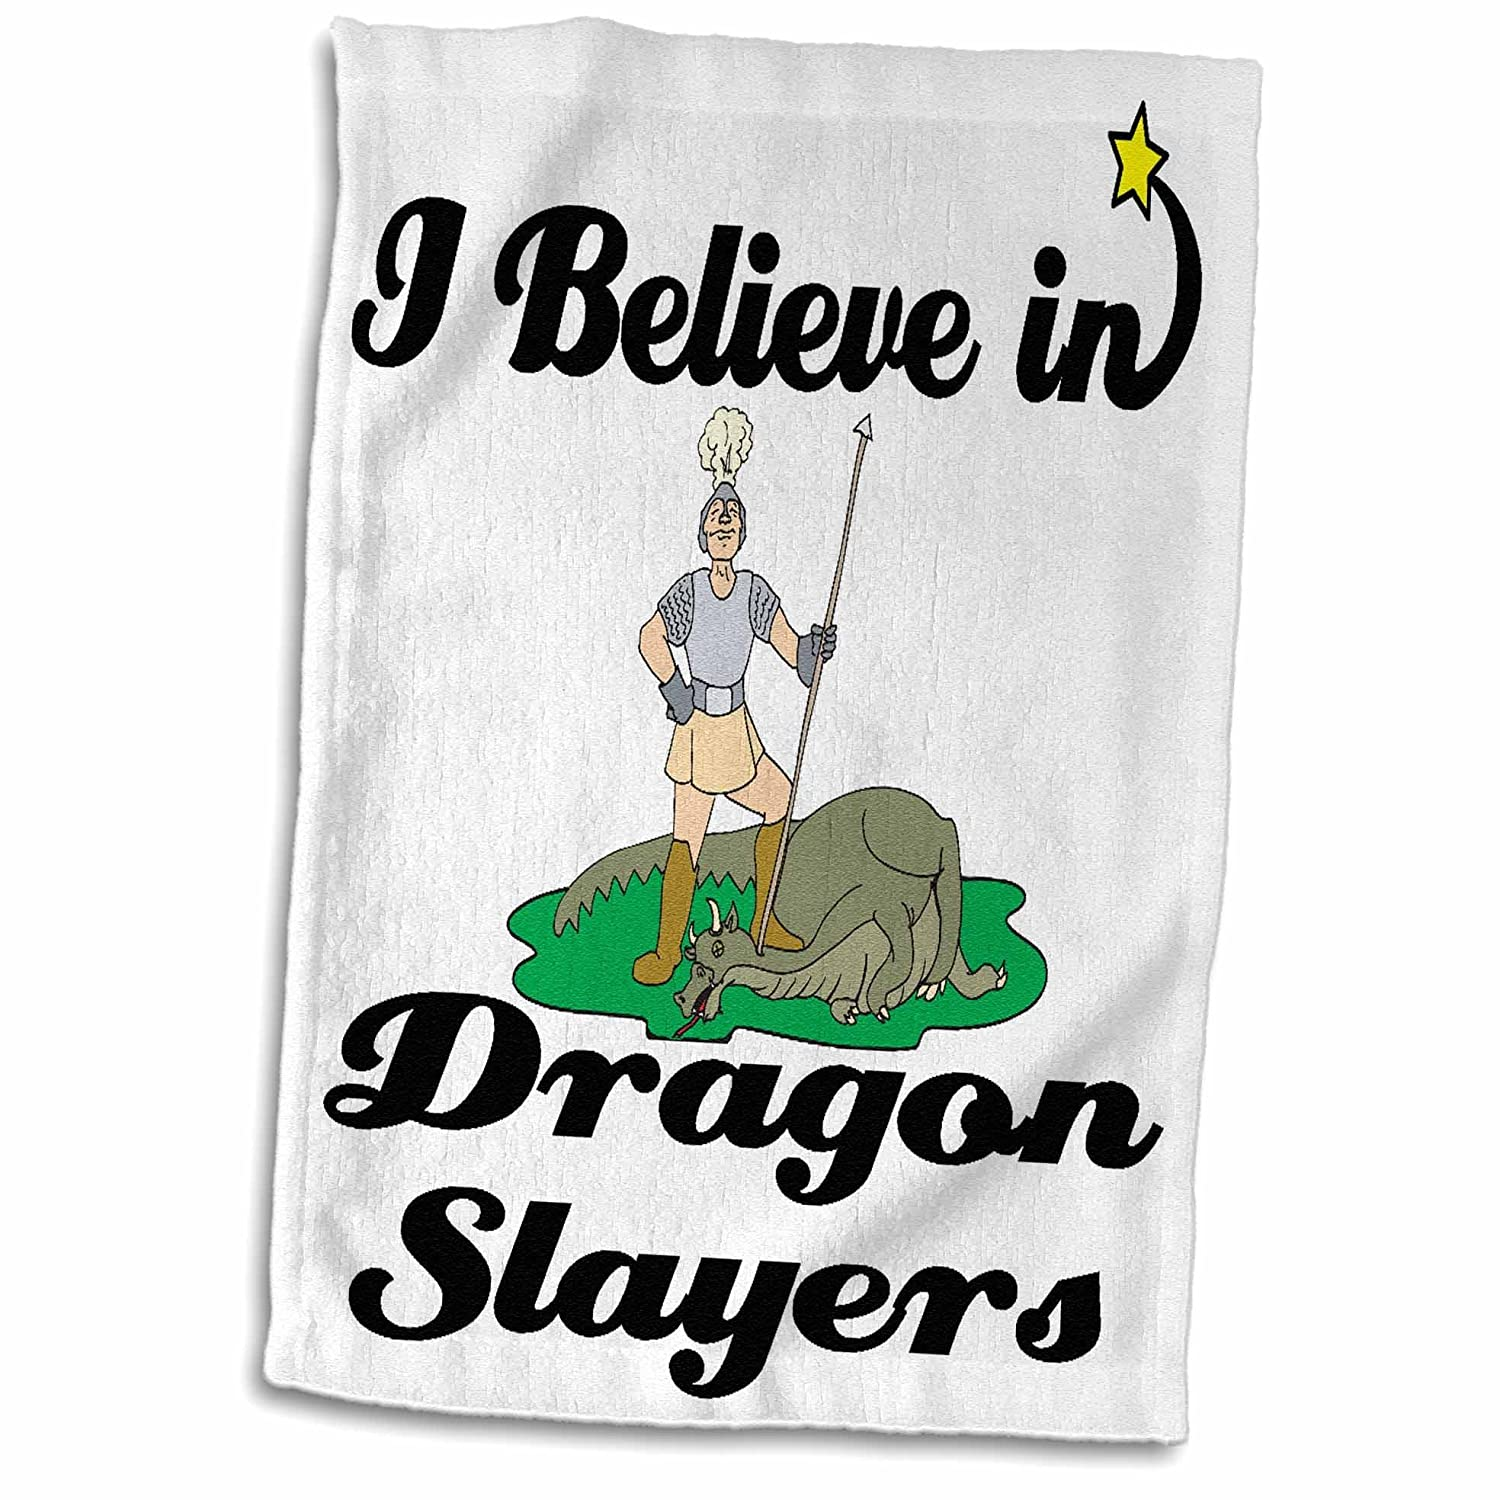 3D Rose I Believe in Dragon Slayers Hand//Sports Towel 15 x 22